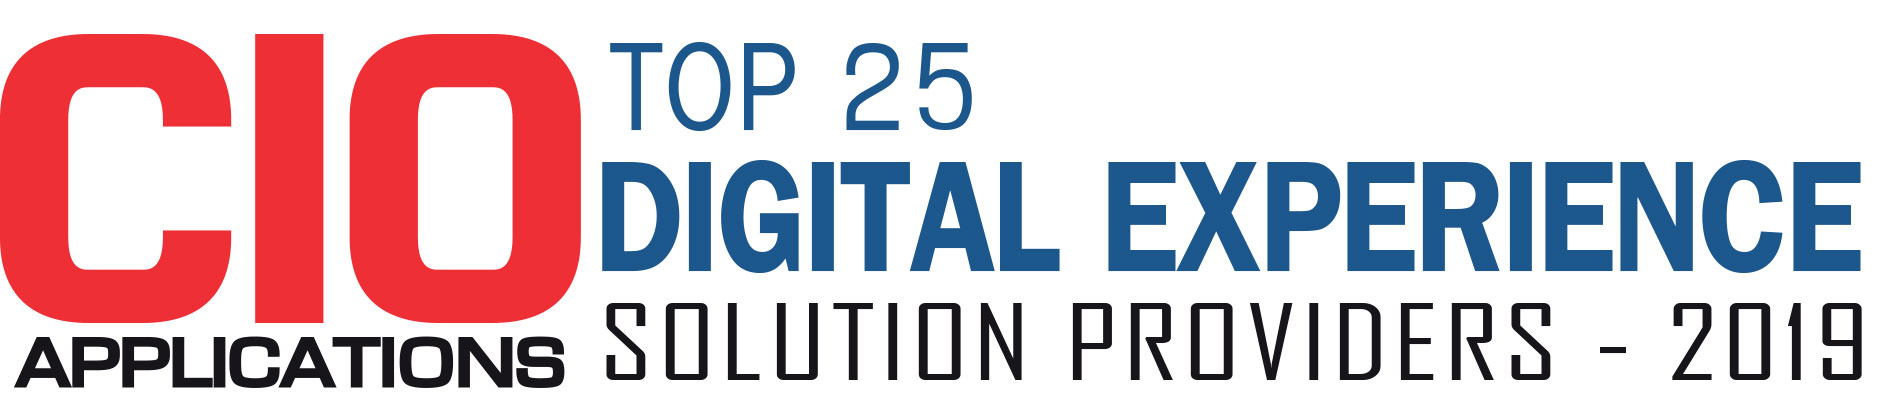 Top 25 Digital Experience Solution Companies - 2019